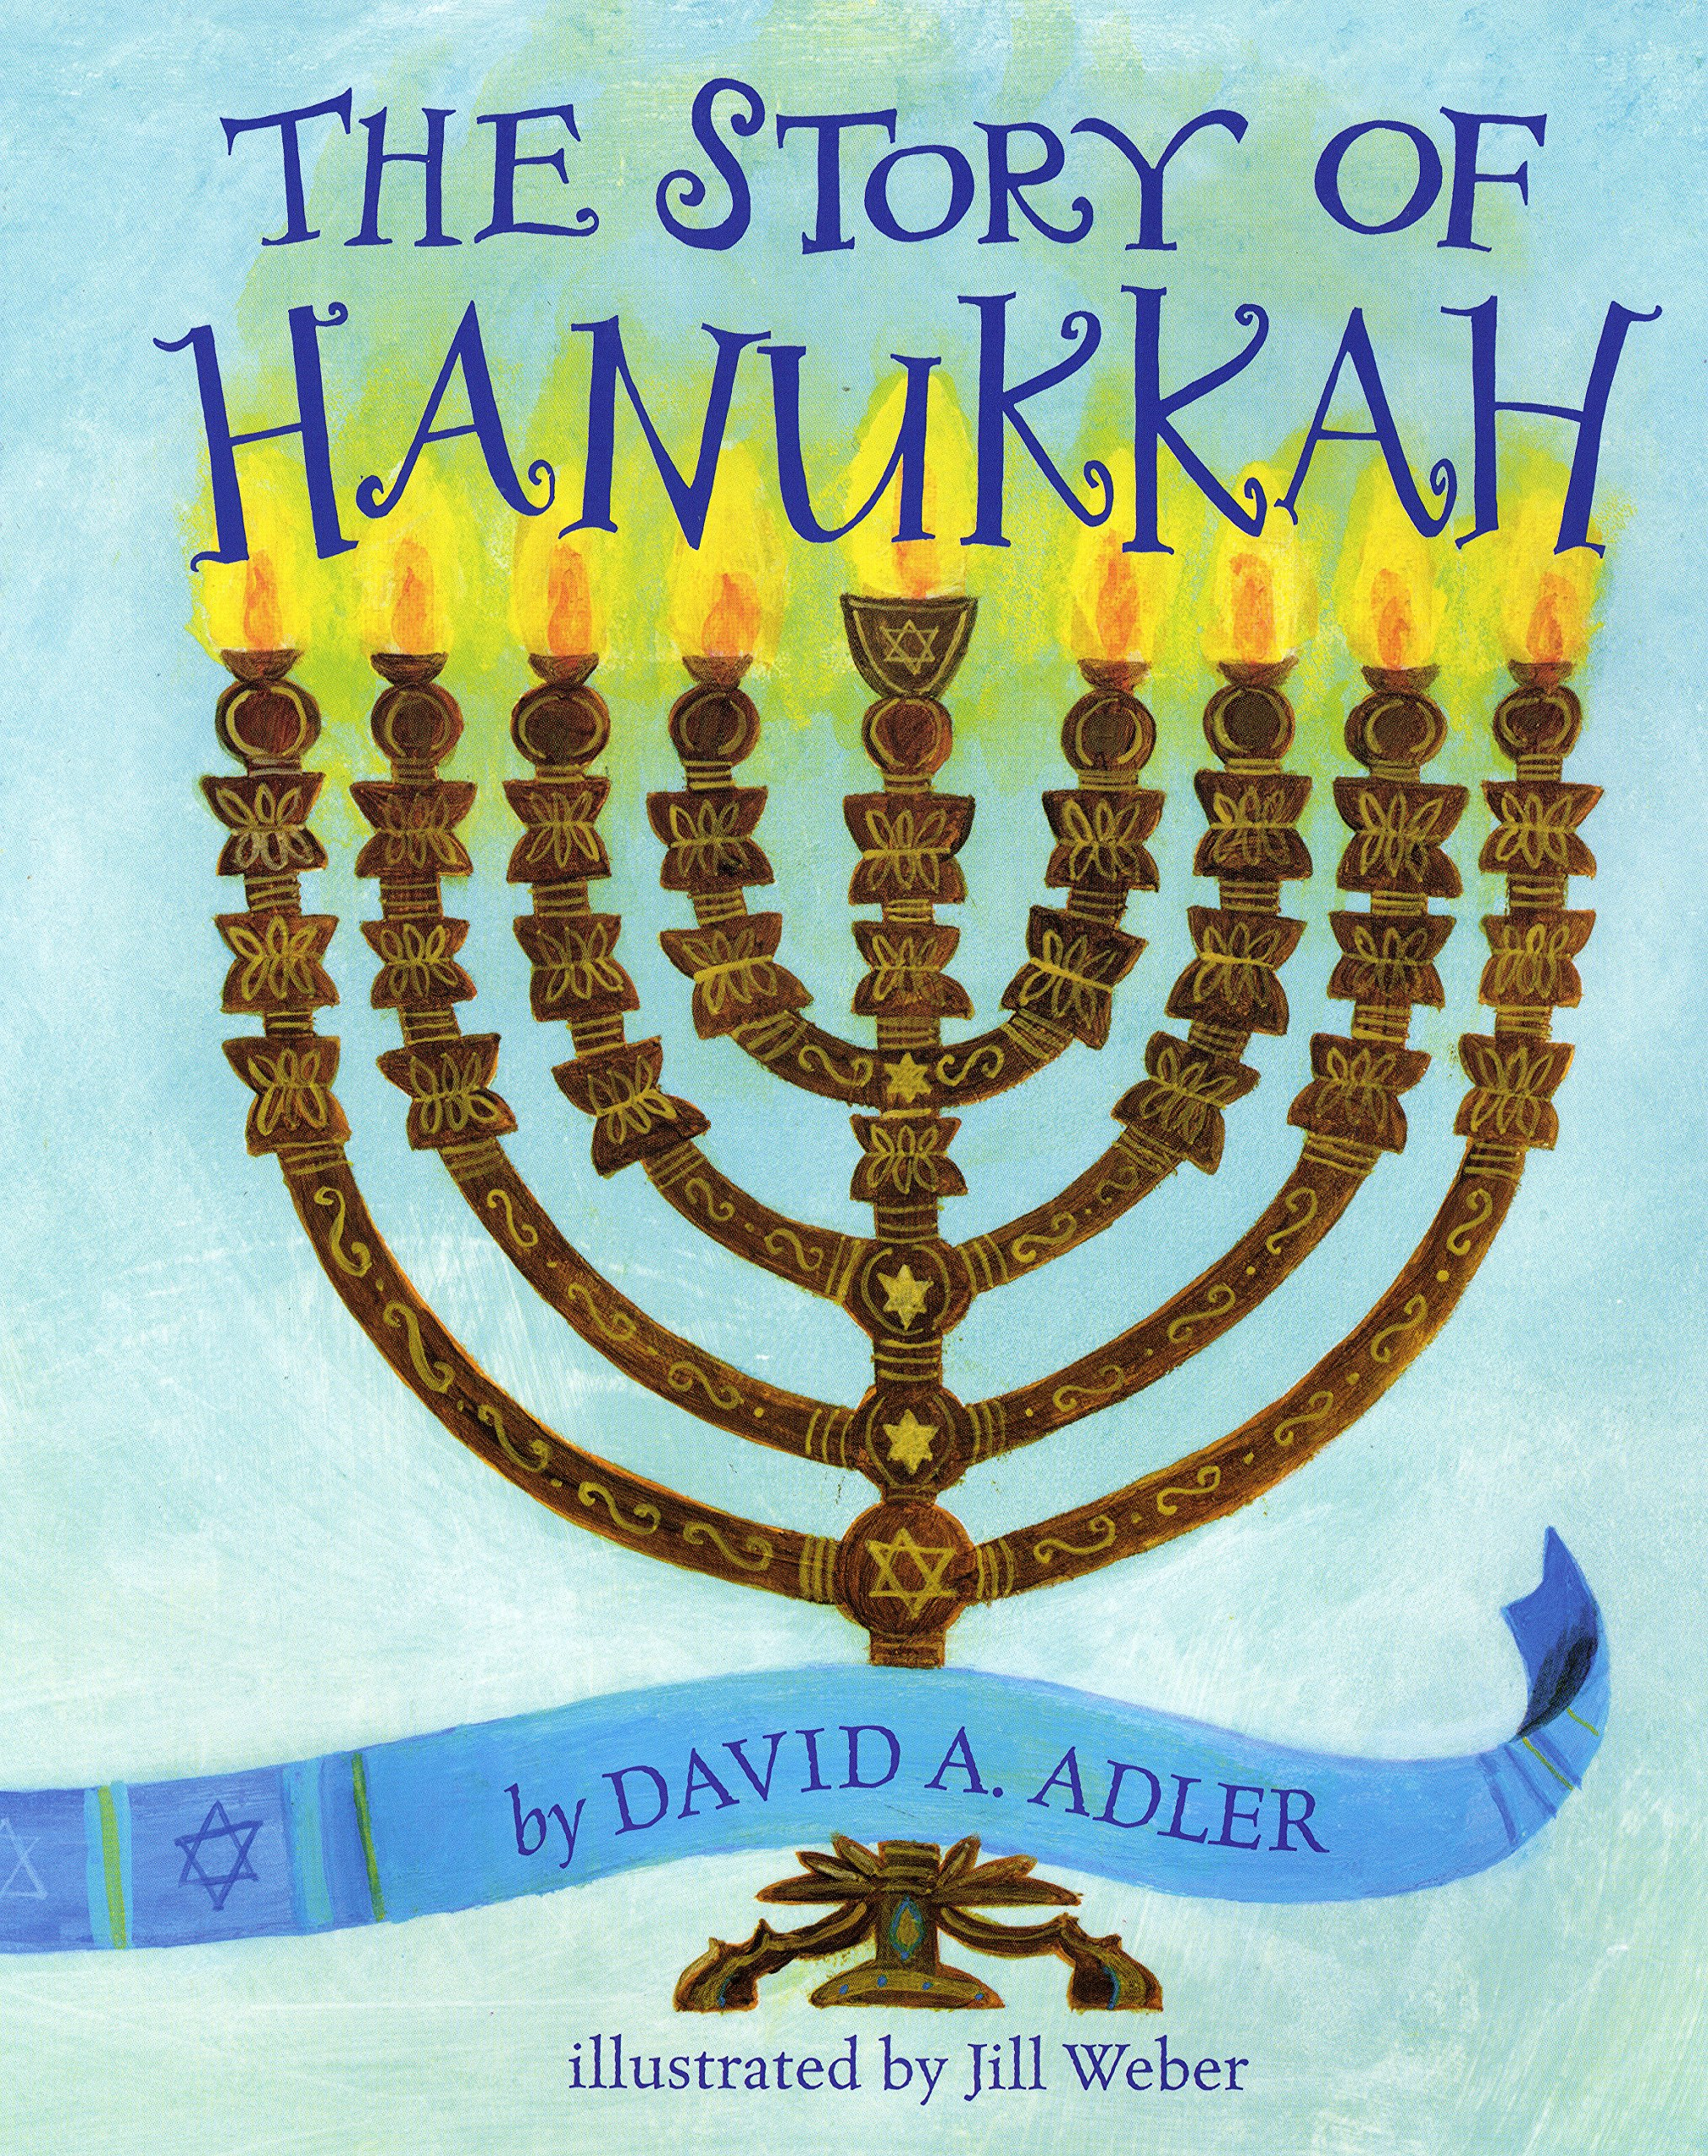 The Story of Hannukkah book cover.